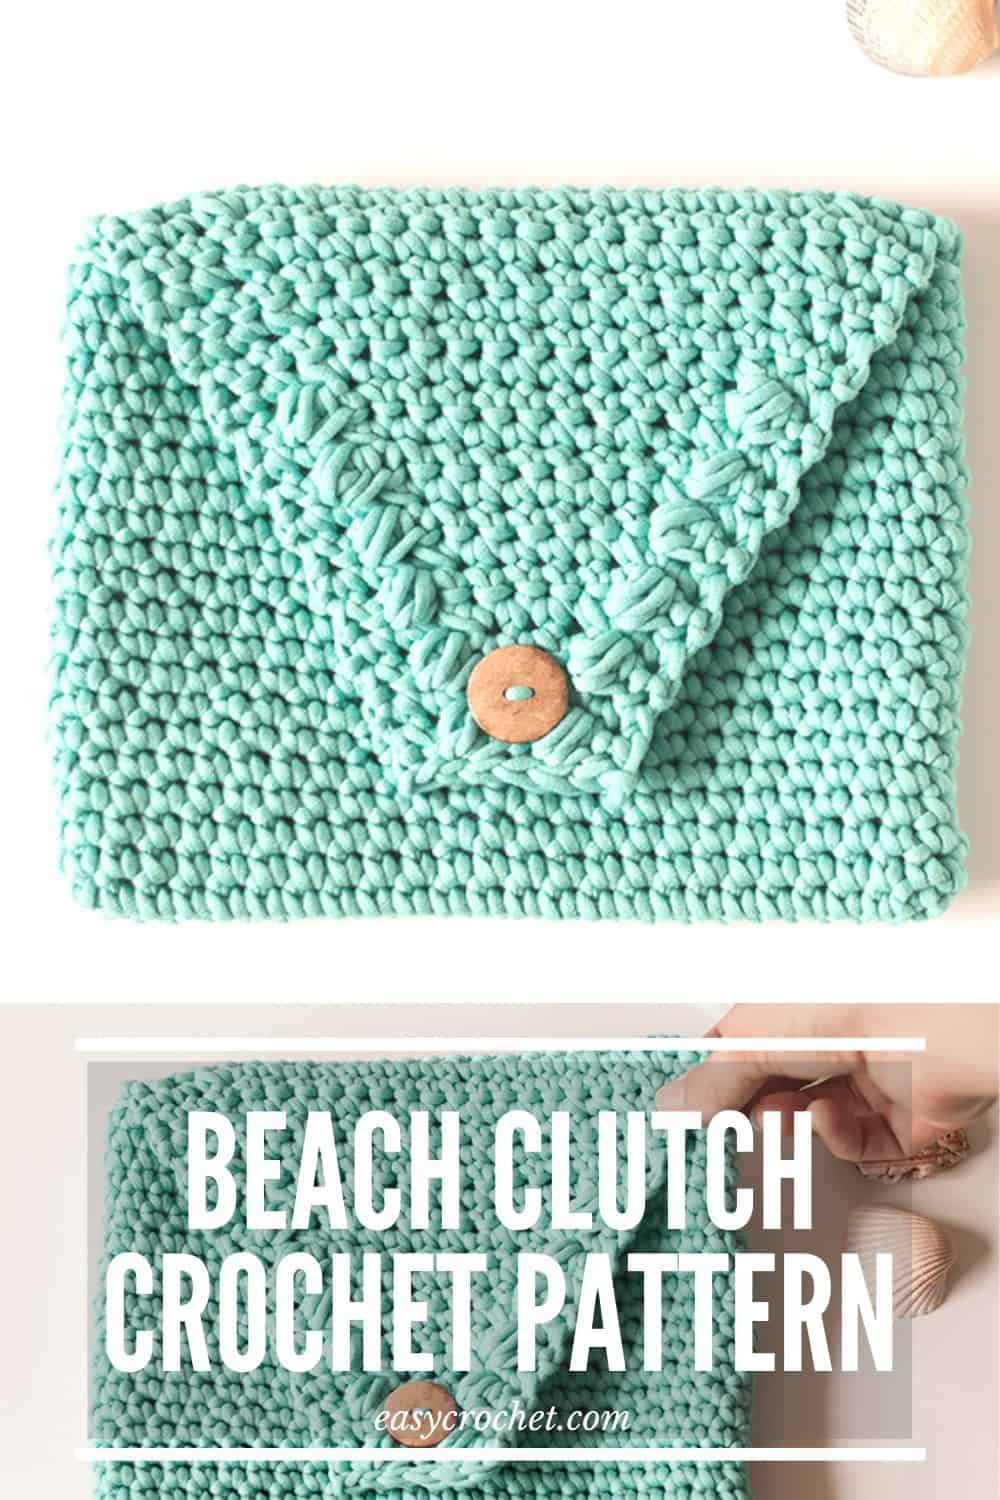 Free Crochet Clutch Pattern - Easy to make and perfect for the beach! Uses Chunky Home Dec yarn that can handle getting wet and being outdoors! Make one today at easycrochet.com via @easycrochetcom